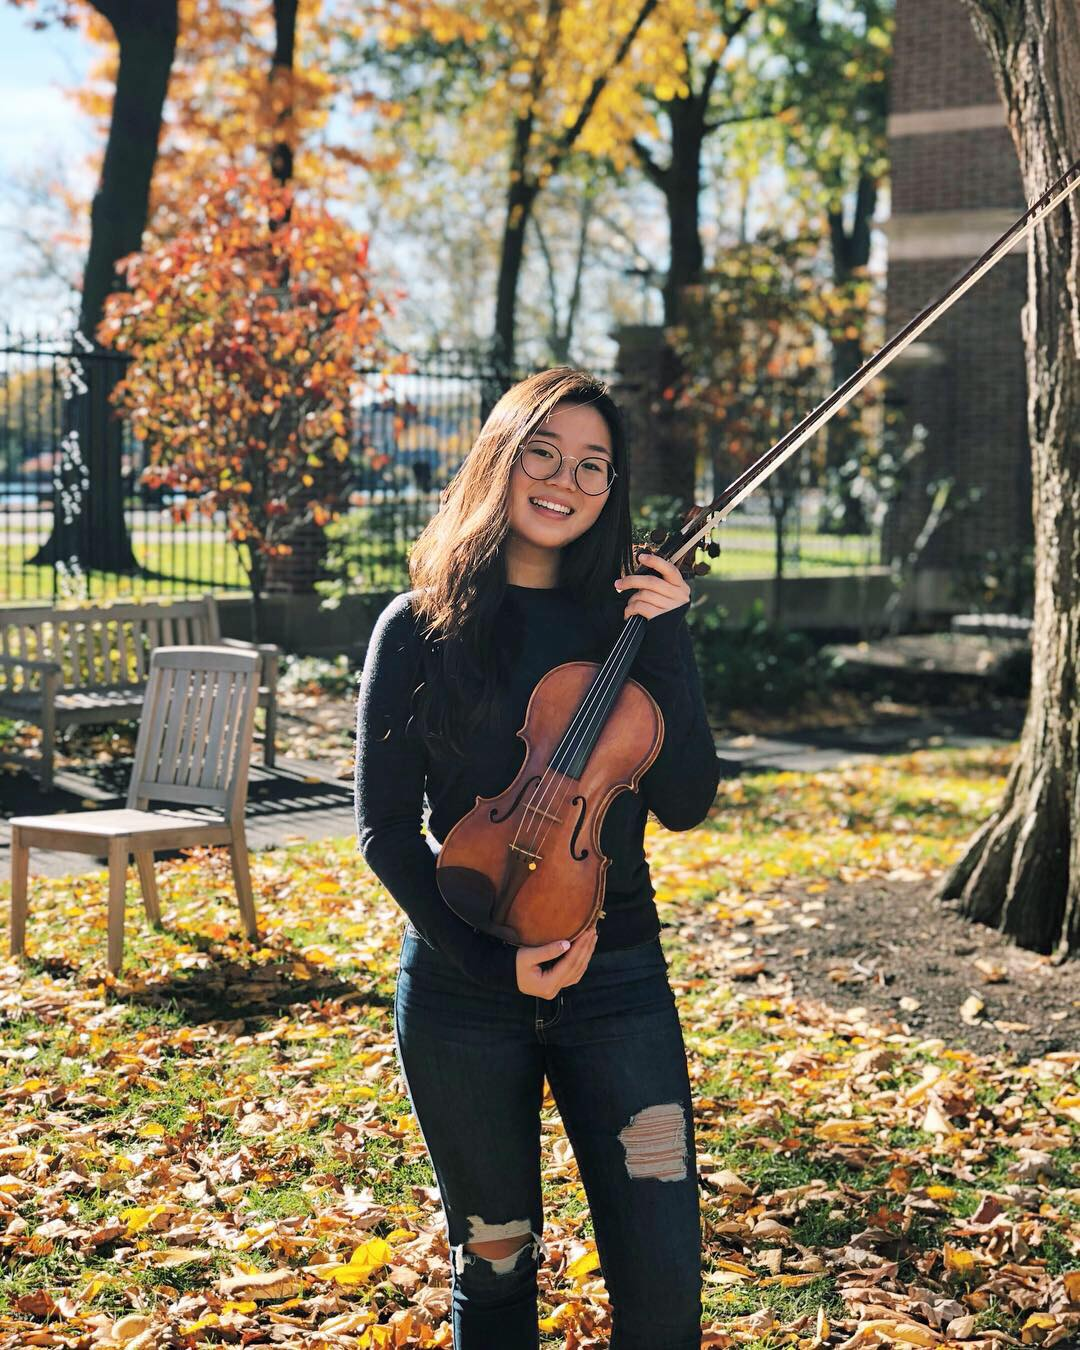 Alyssa Kim '22  is a freshman in Canaday. Though she's only been in Brattle a short time, she's already realized that her least favorite person in Brattle is that Asian violinist. We definitely know who she's talking about. ;) When she isn't playing the violin, she often can be found extracting other people's blackheads or reminiscing on her past experiences as a pad thai eating competition champion.